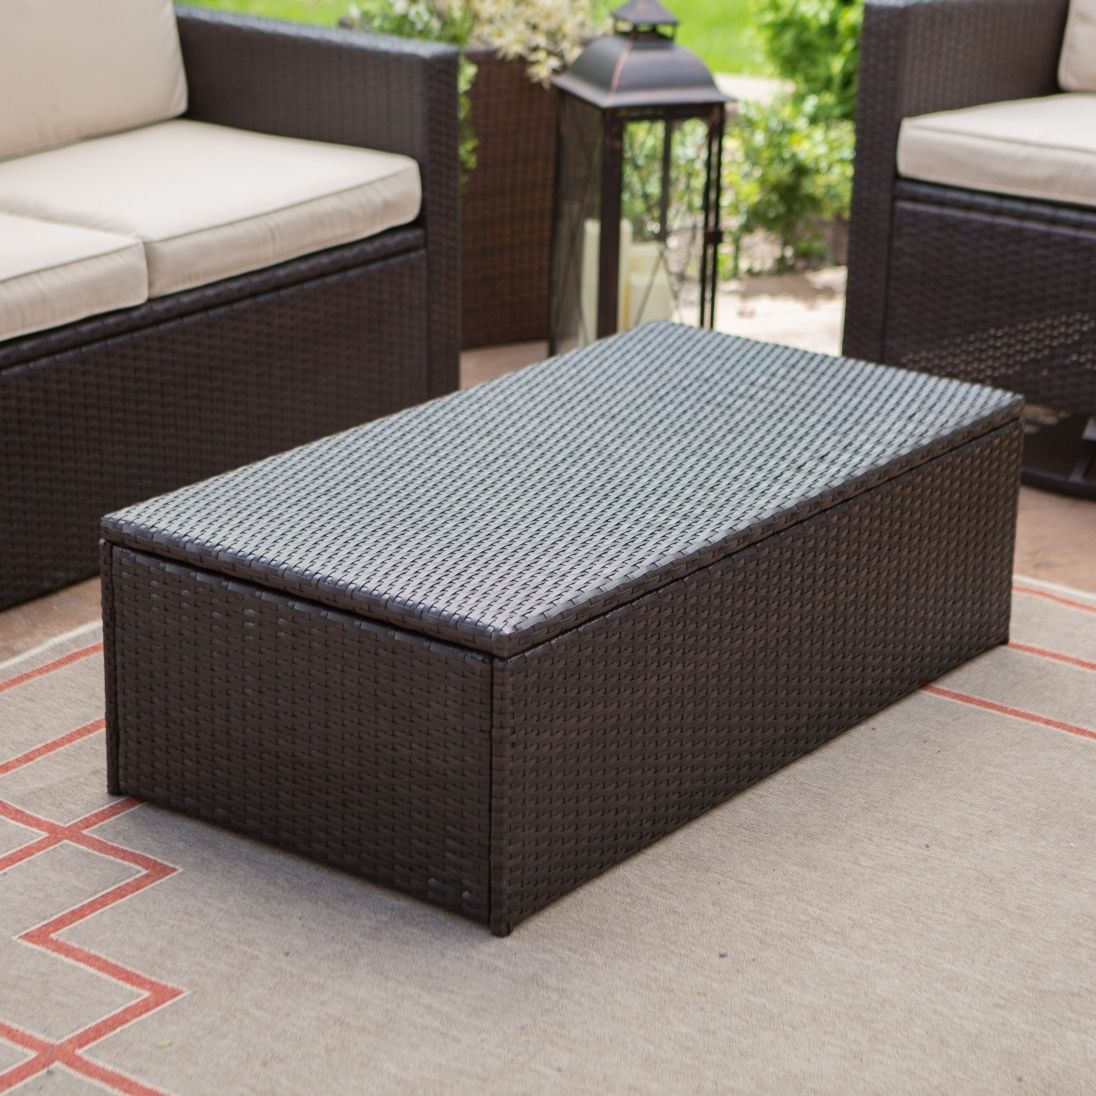 Wicker Coffee Tables Best Paint For Interior Check More At Http Www Buzzfolders